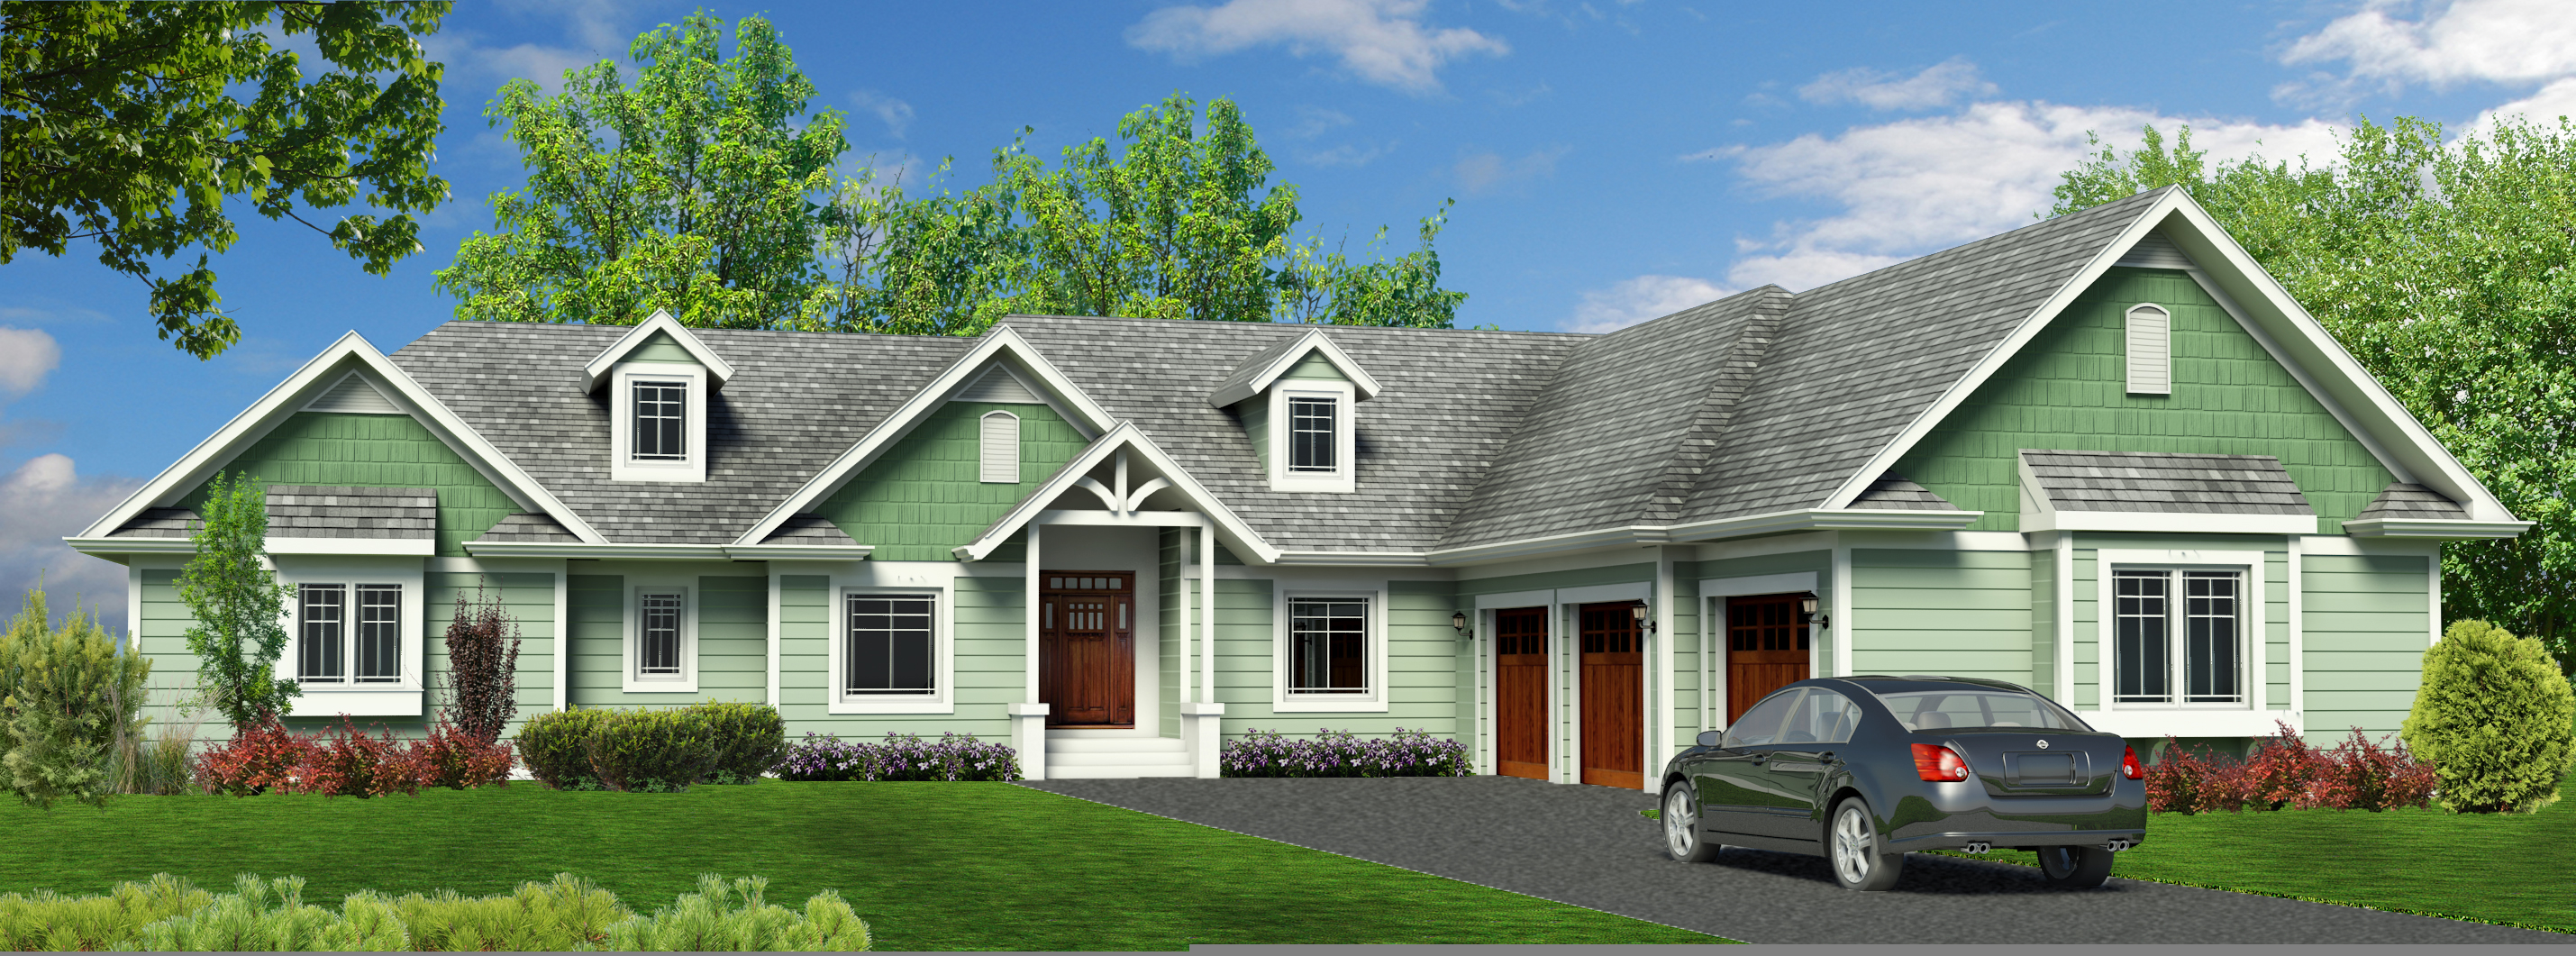 Craftsman Rendering